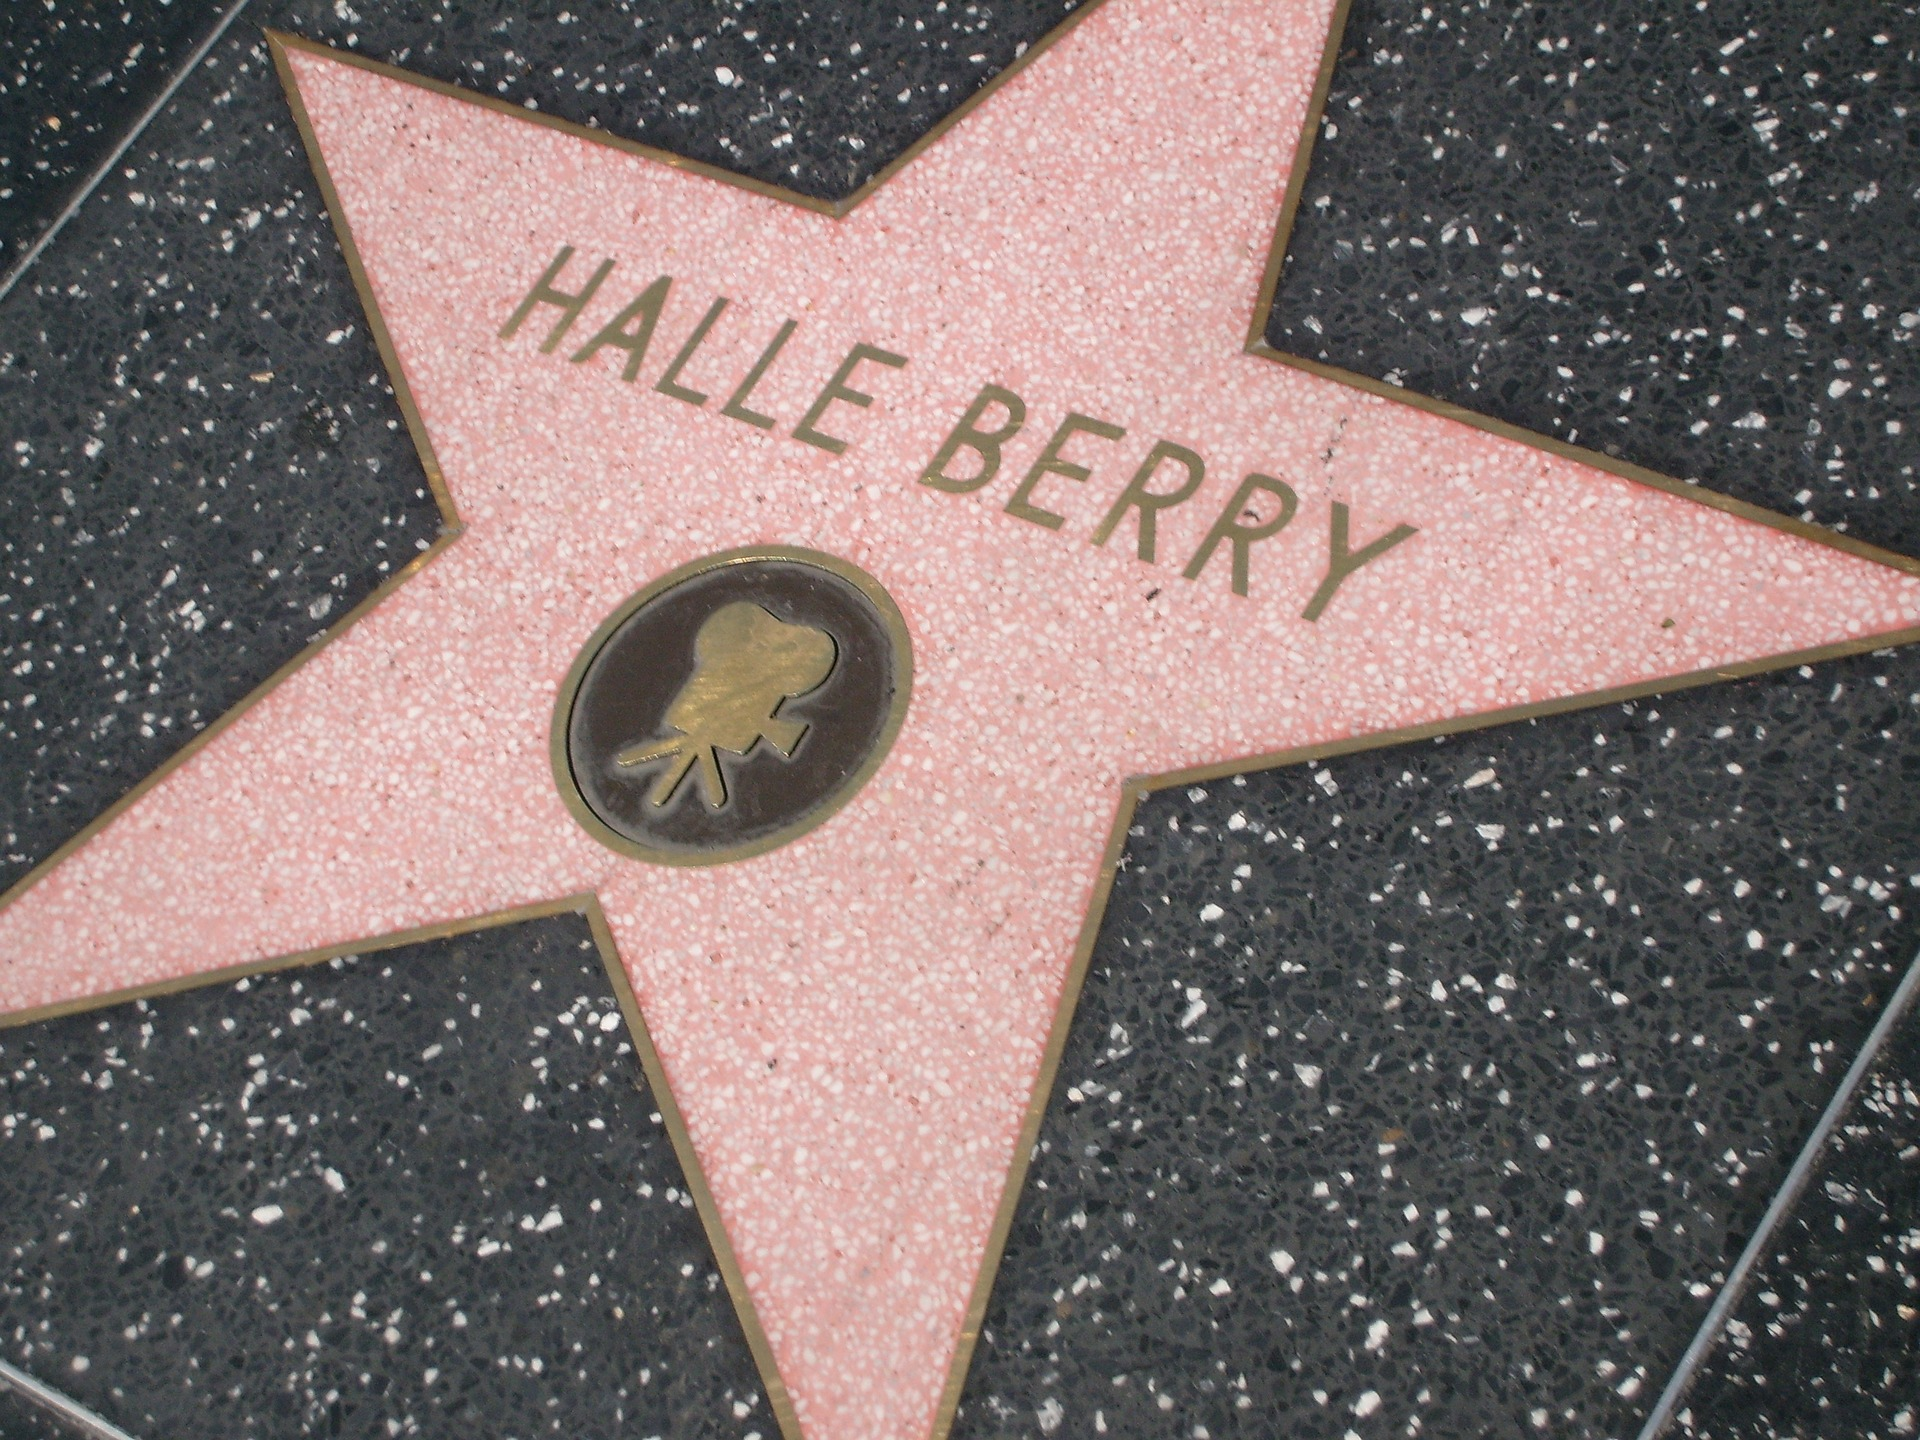 Halle Berry's star on the Hollywood Walk of Fame